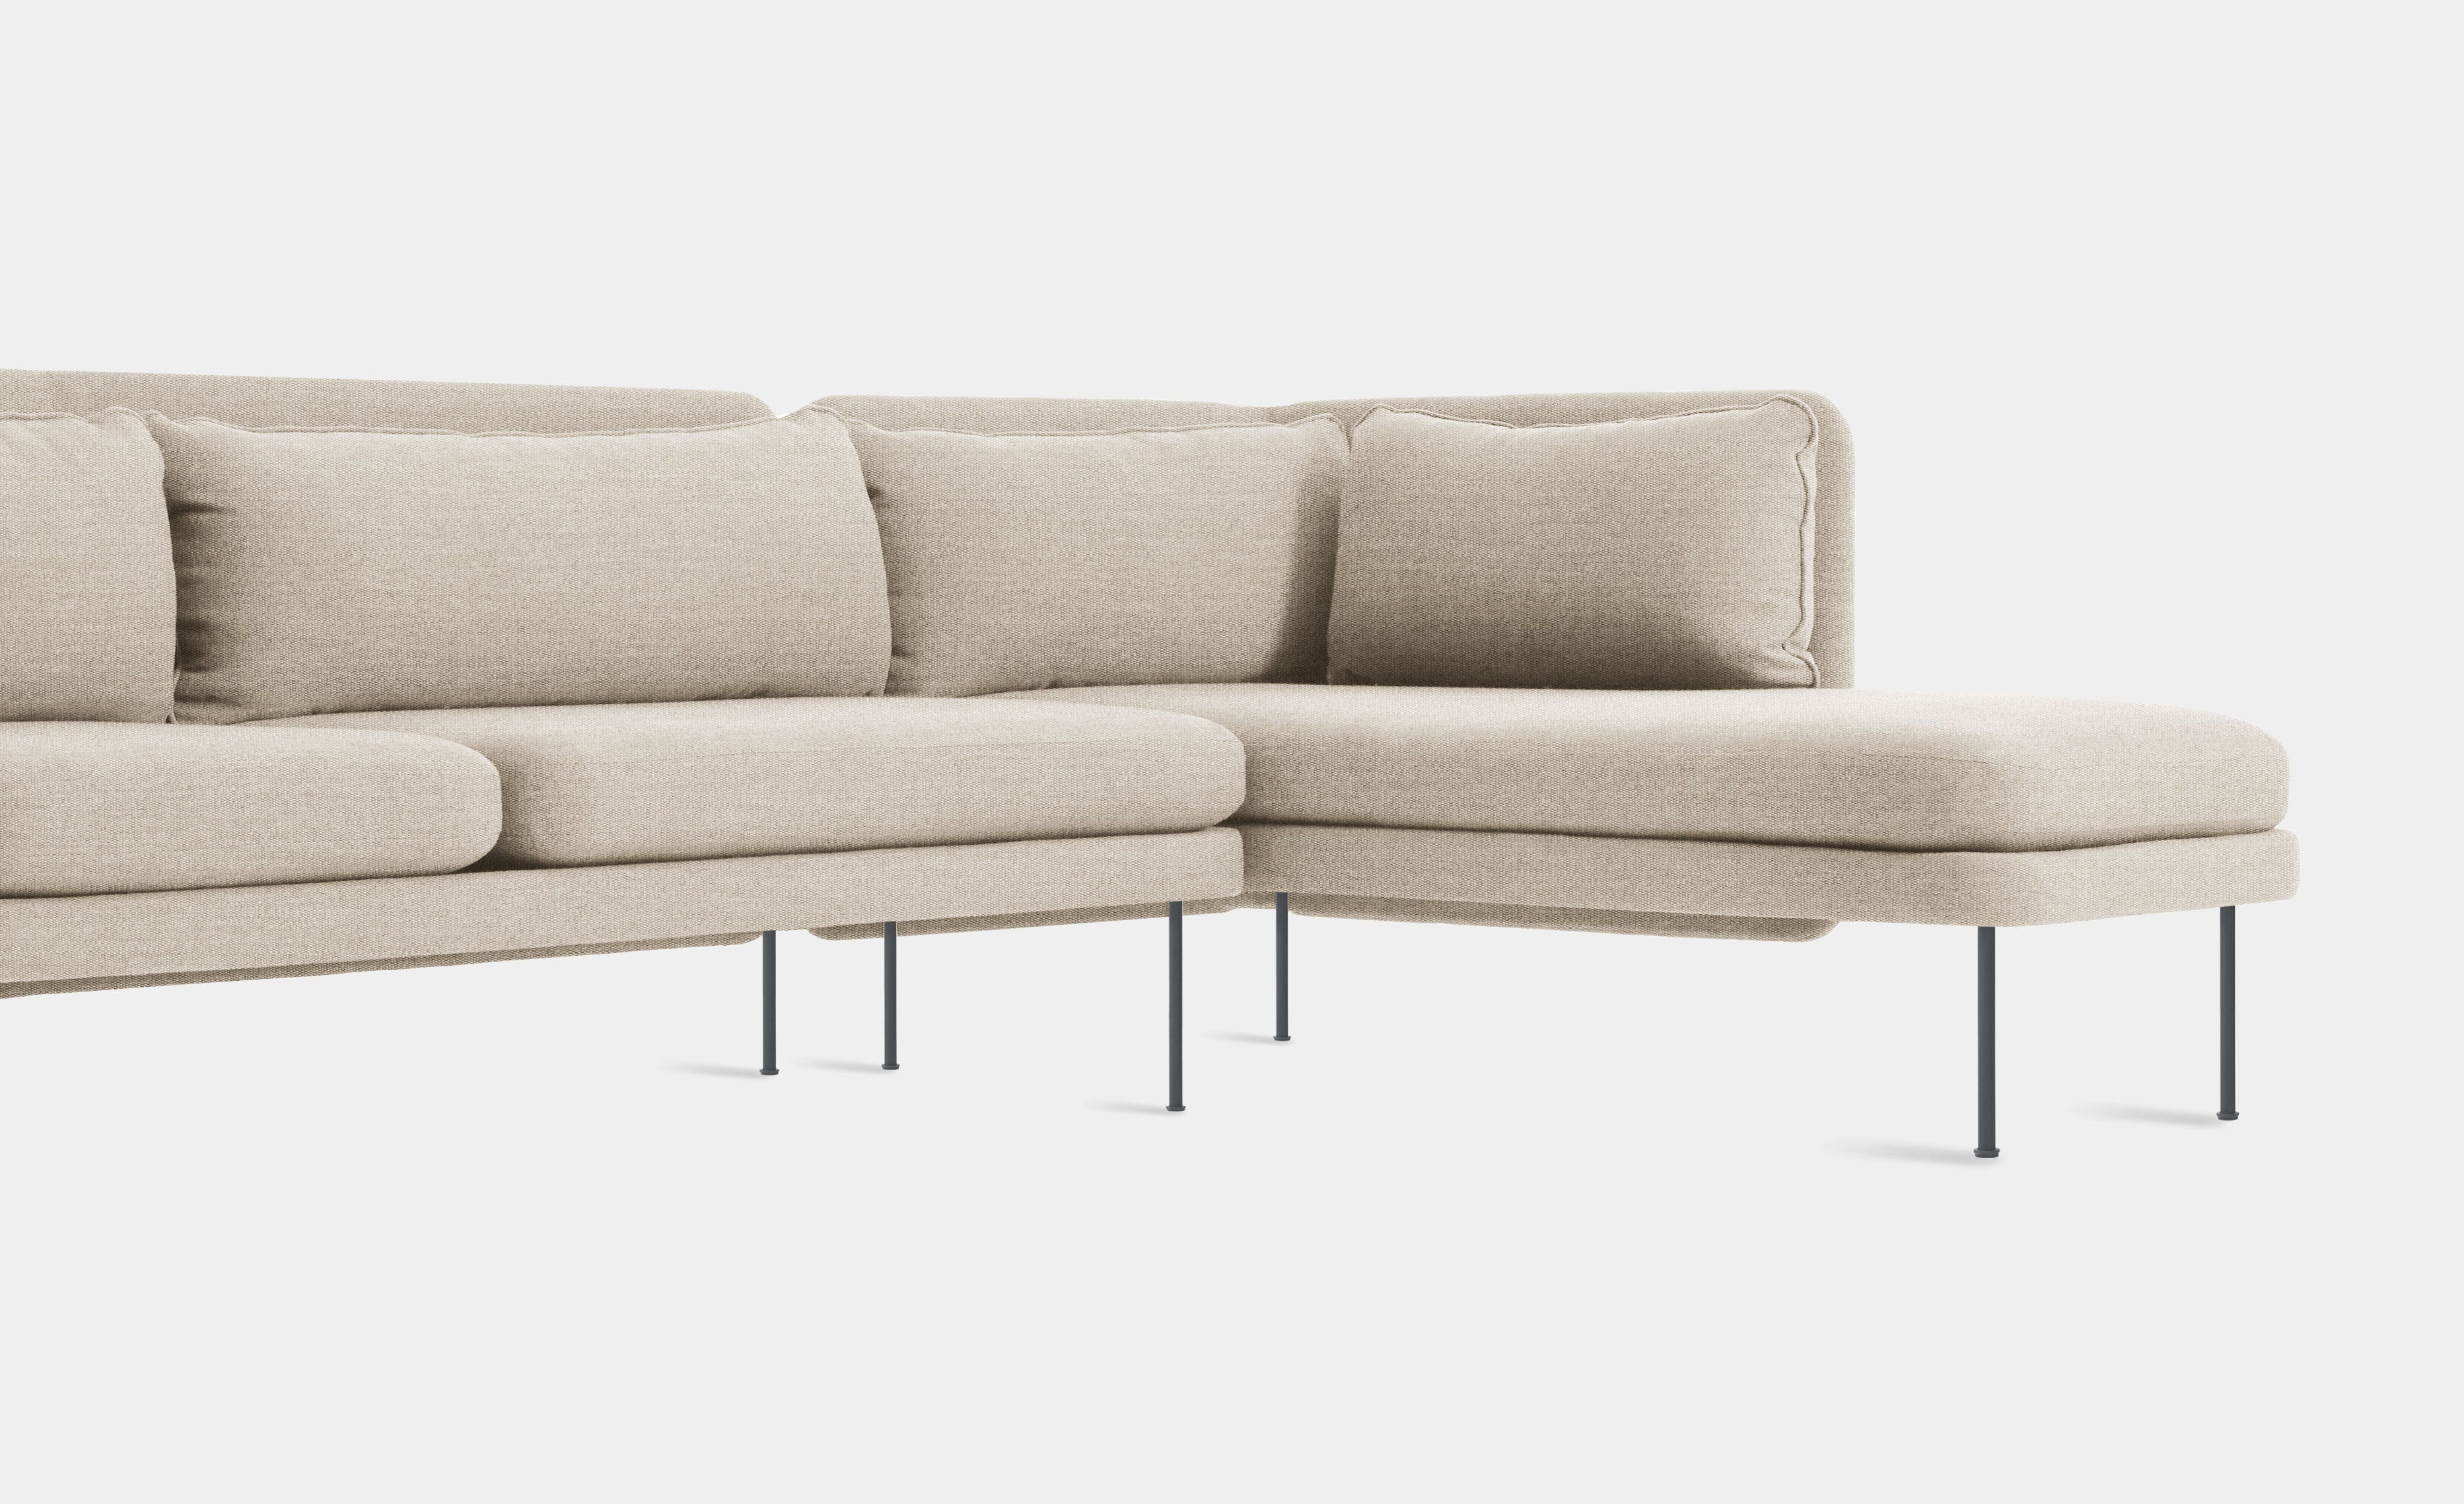 Bloke Sofa with Chaise by Blu Dot